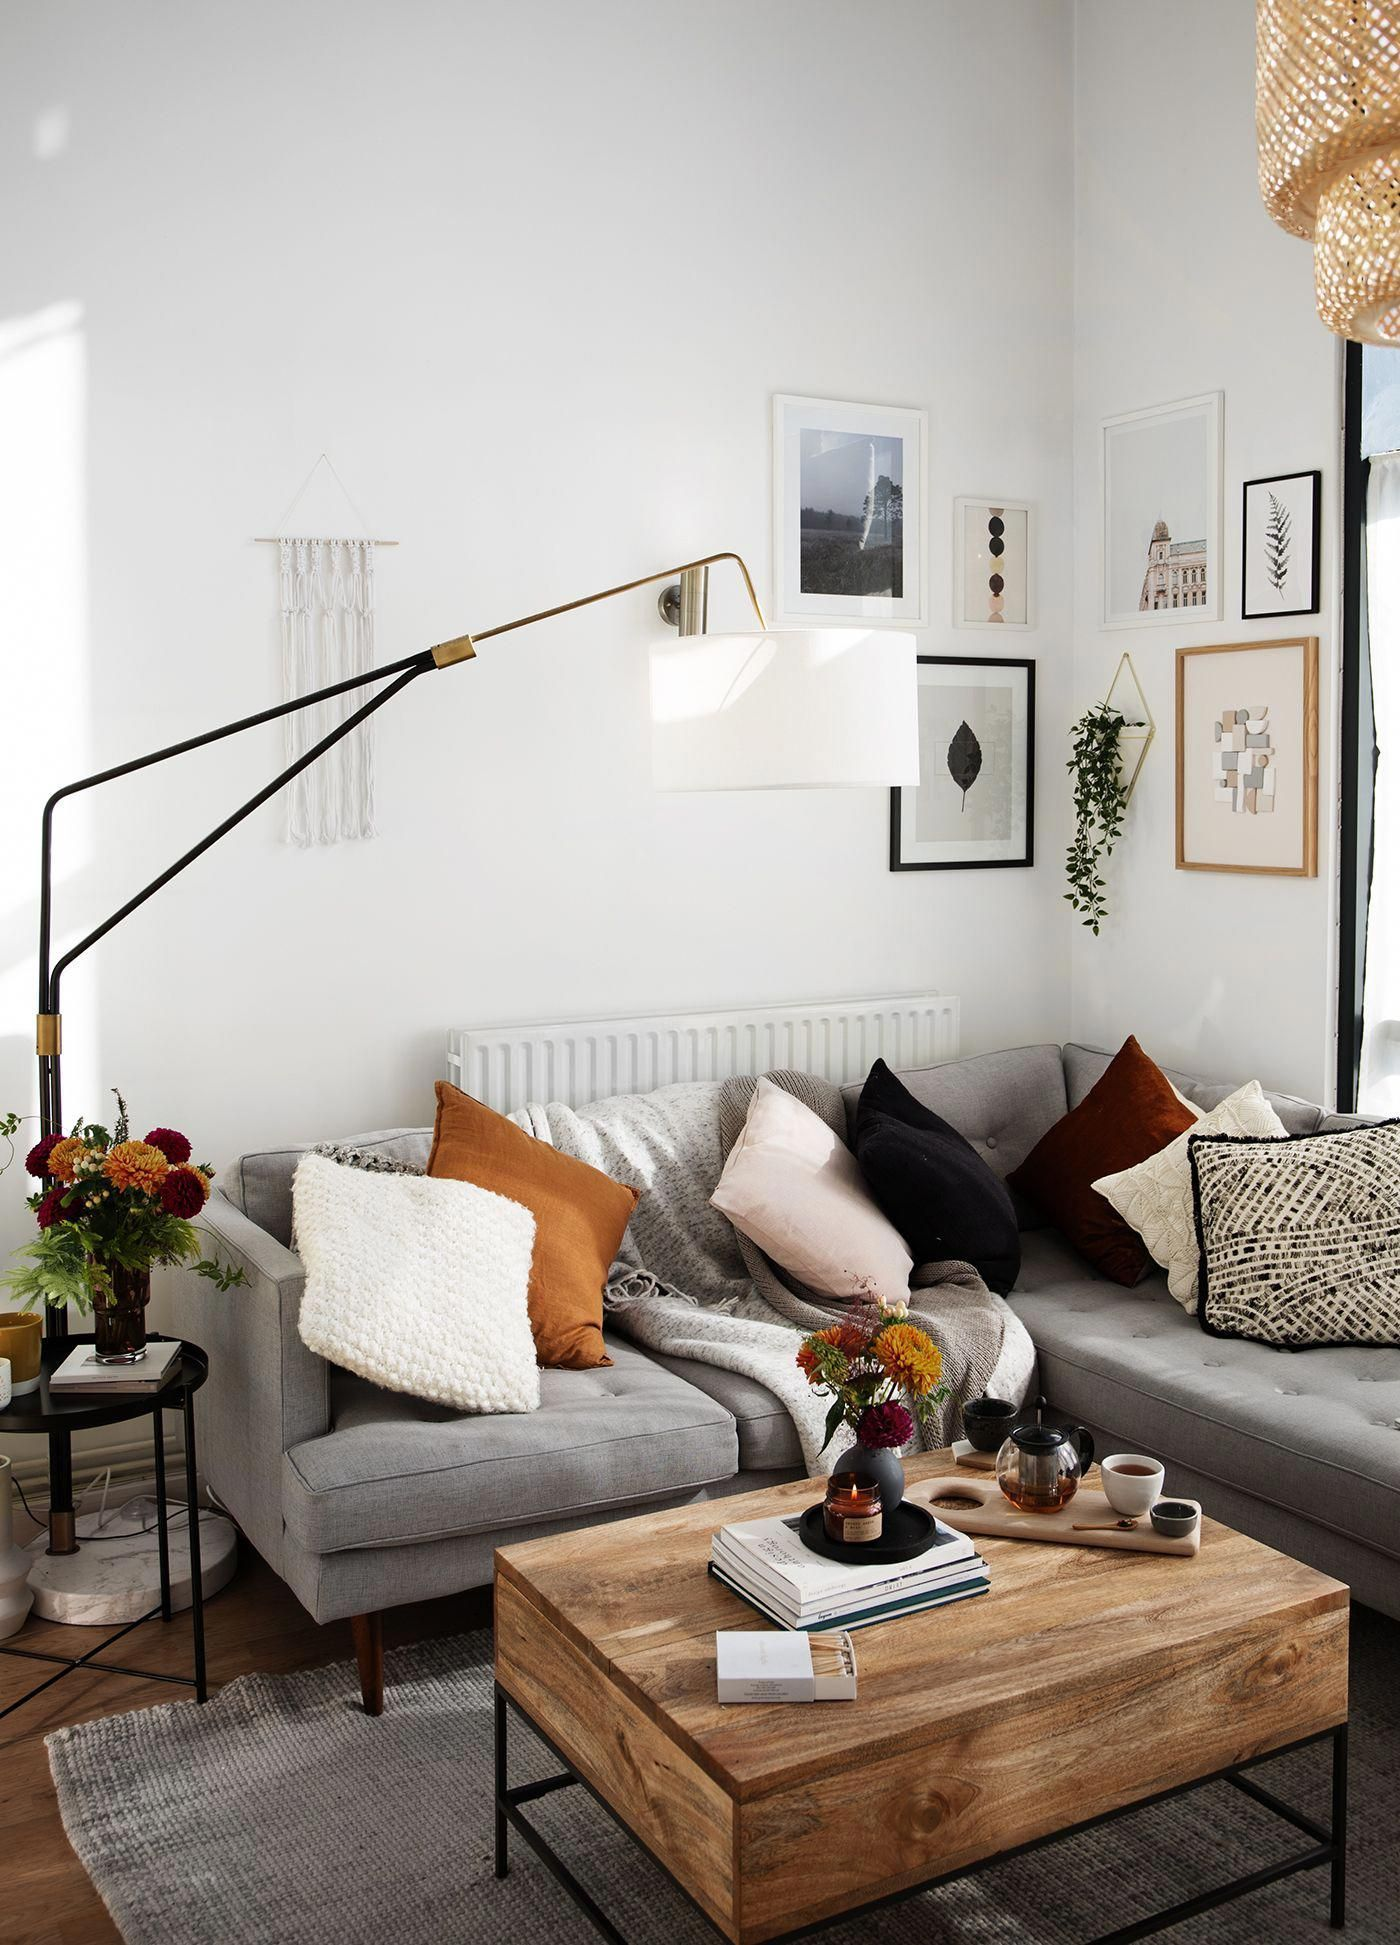 Turn up your  decor with these mesmerizing living room designs! Your modern home decor will never be the same. interiordetails#homedetails#homedecorideas#eclecticdecor#currentdesignsituation#housegoals#interiordesign#architecture#home#design#interiordesign #modernhomedecor #midcenturylighting #uniquedesignideas #homedecor #interiordesignideas #livingroomdesign #livingroomideas #modernlivingroom